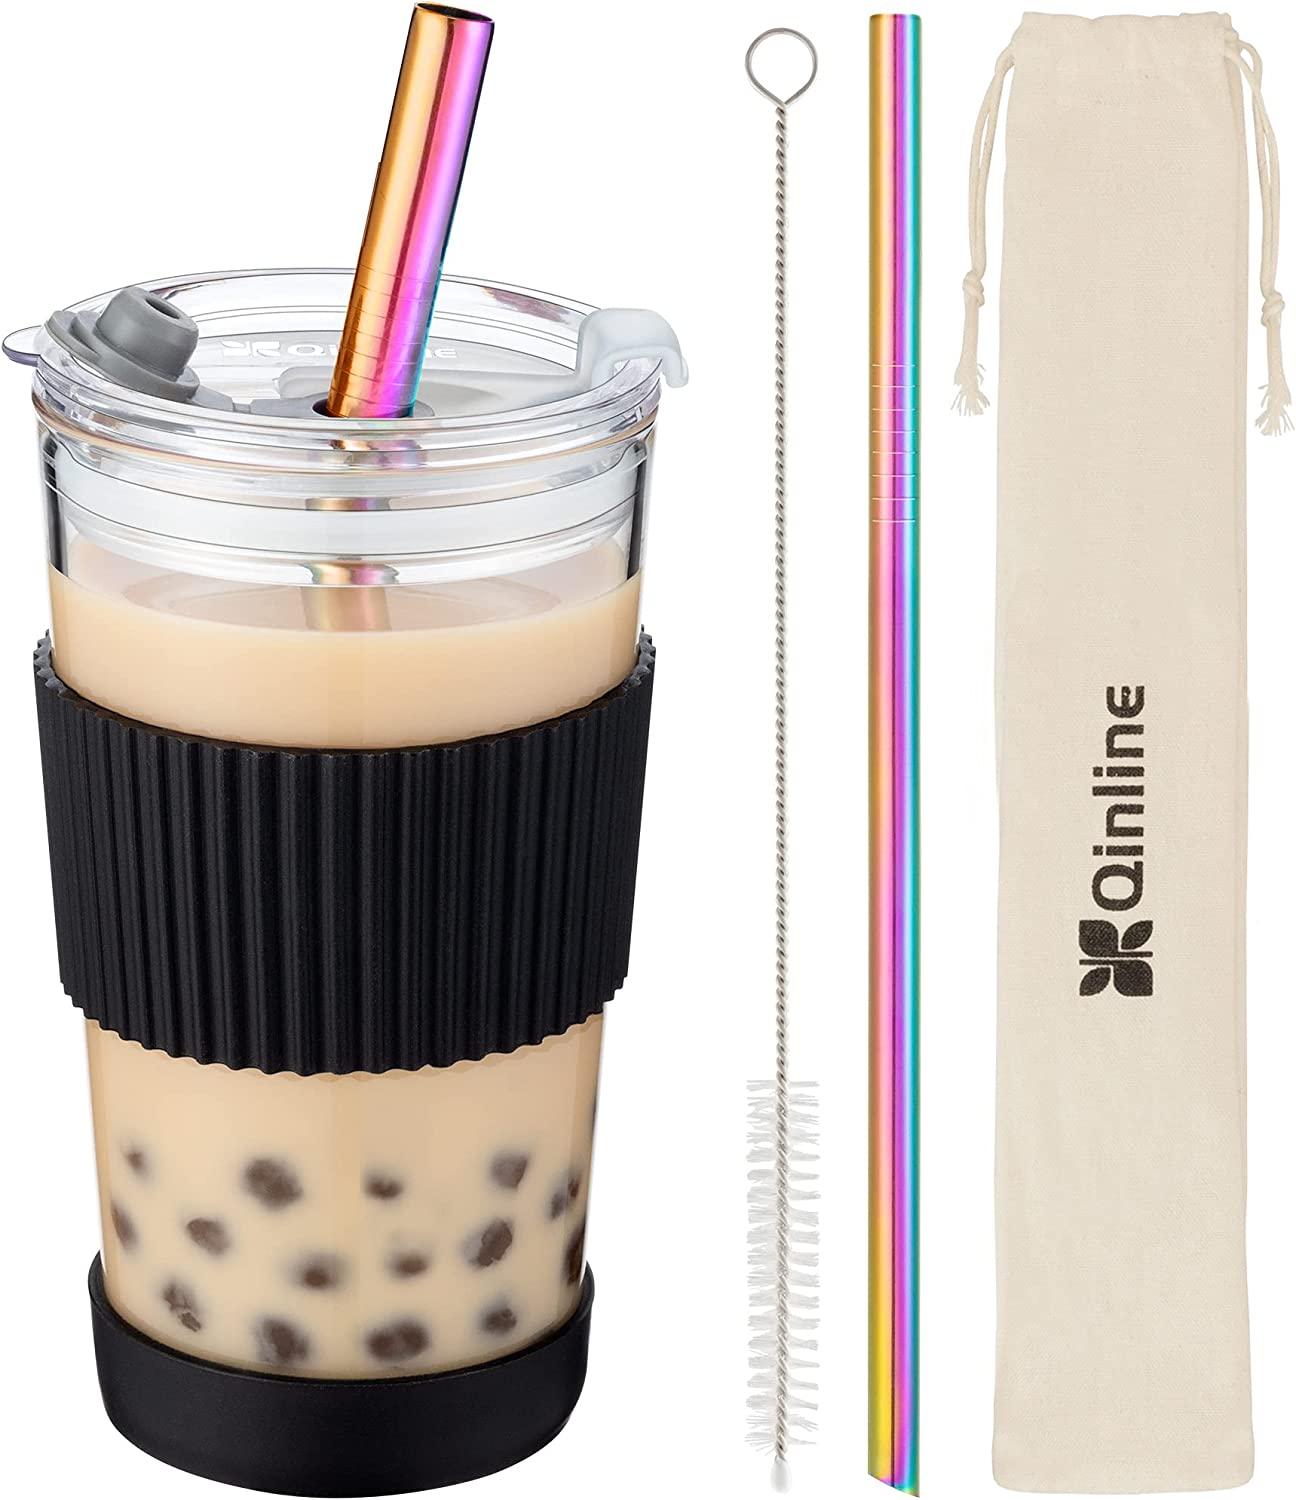 Boba Cup Reusable Bubble Beauty products Some reservation Tea Smoothie Cups 18Oz Glass